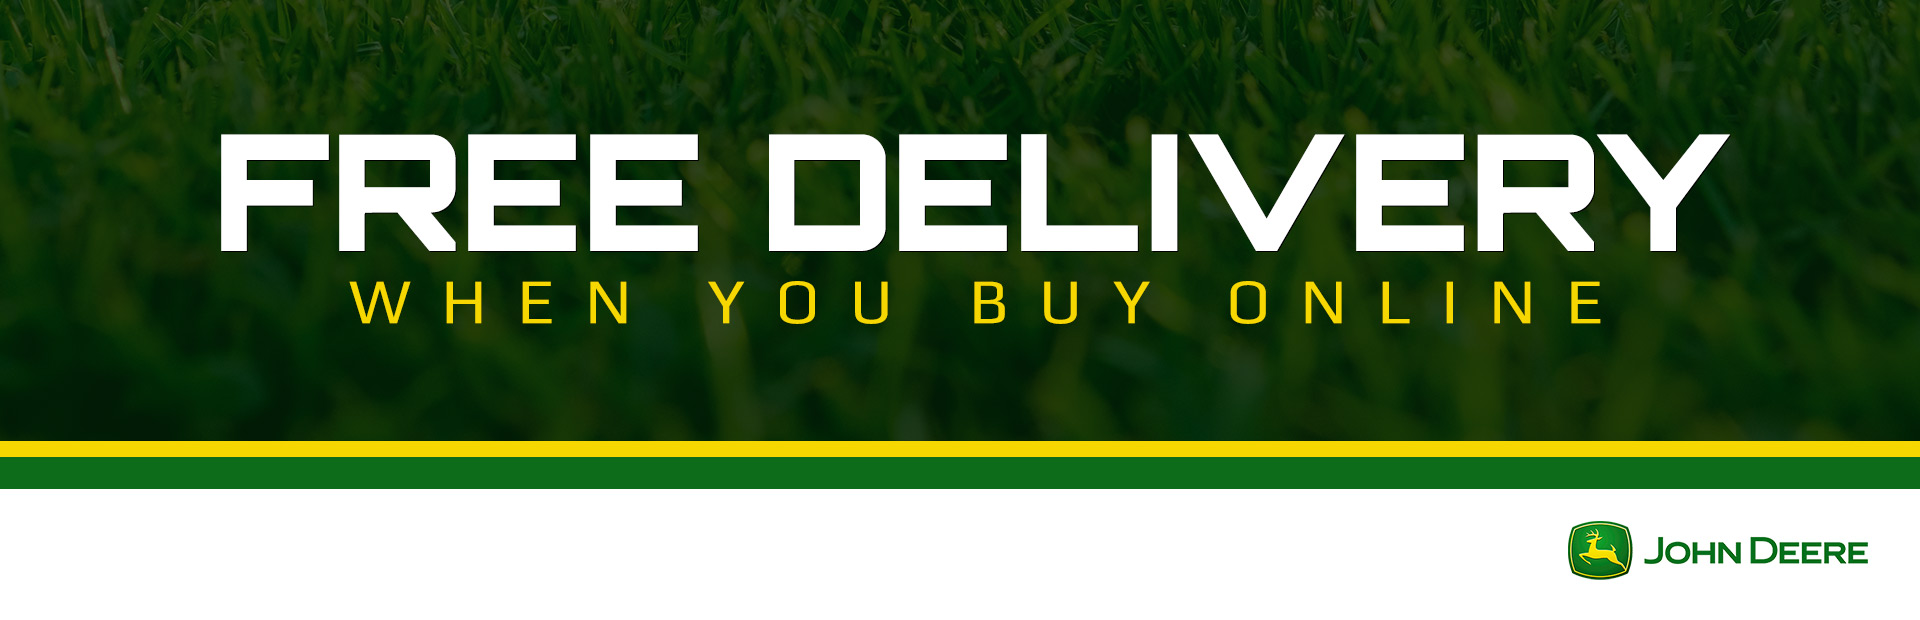 John Deere: Free Delivery When You Buy Online